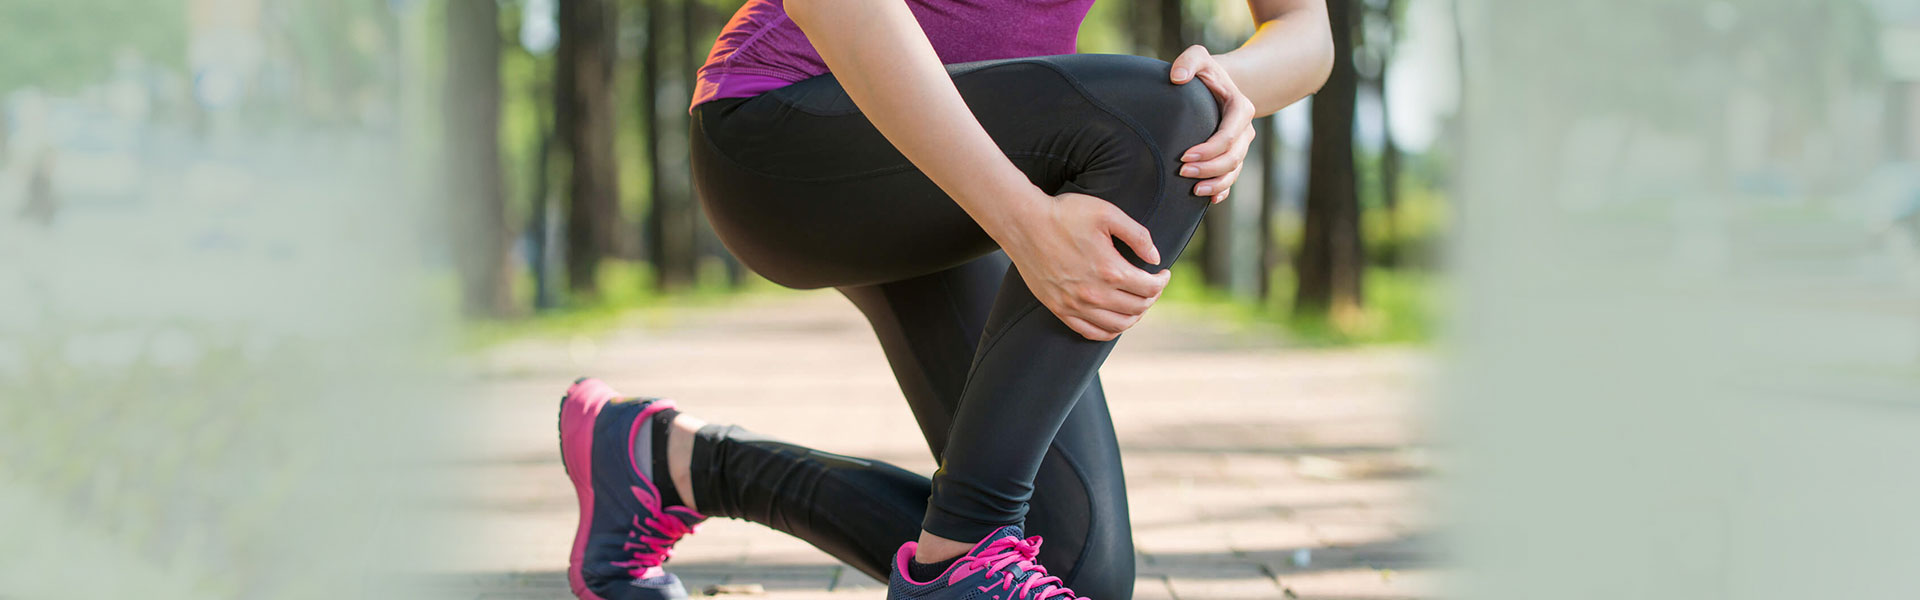 Evaluations-for-Knee-Pain